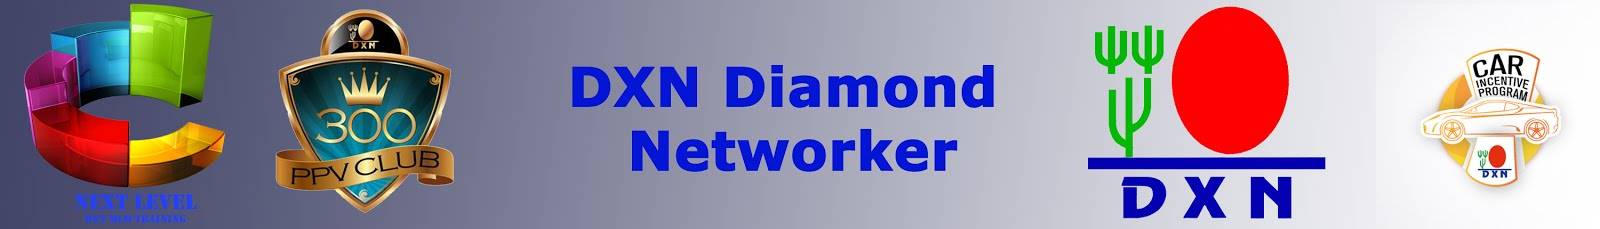 DXN Diamond Networker